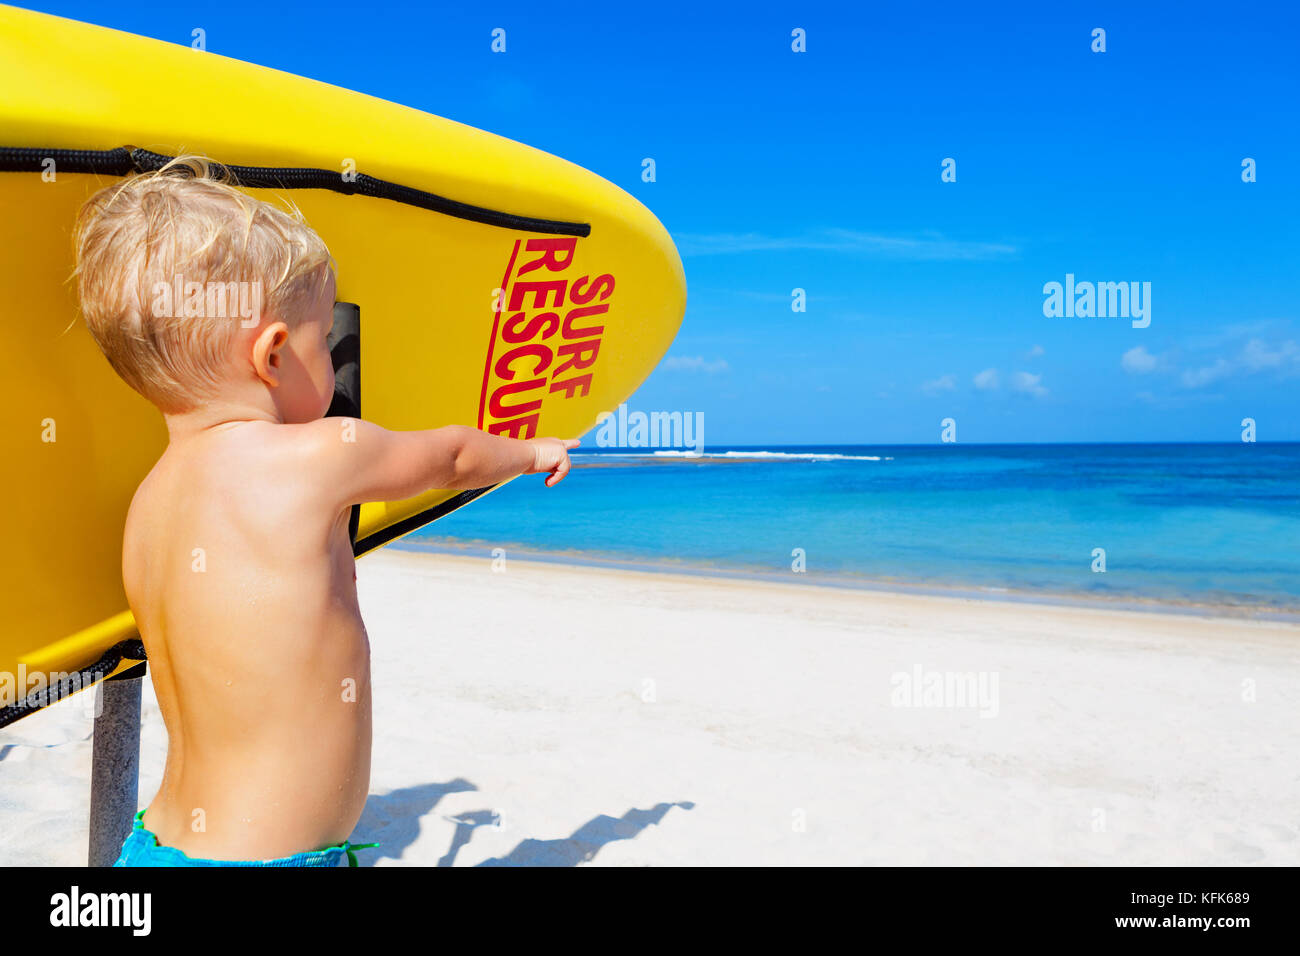 Life saving yellow board with surf rescue sign. Funny children lifeguard stand on duty, look at sea. Swimming people - Stock Image